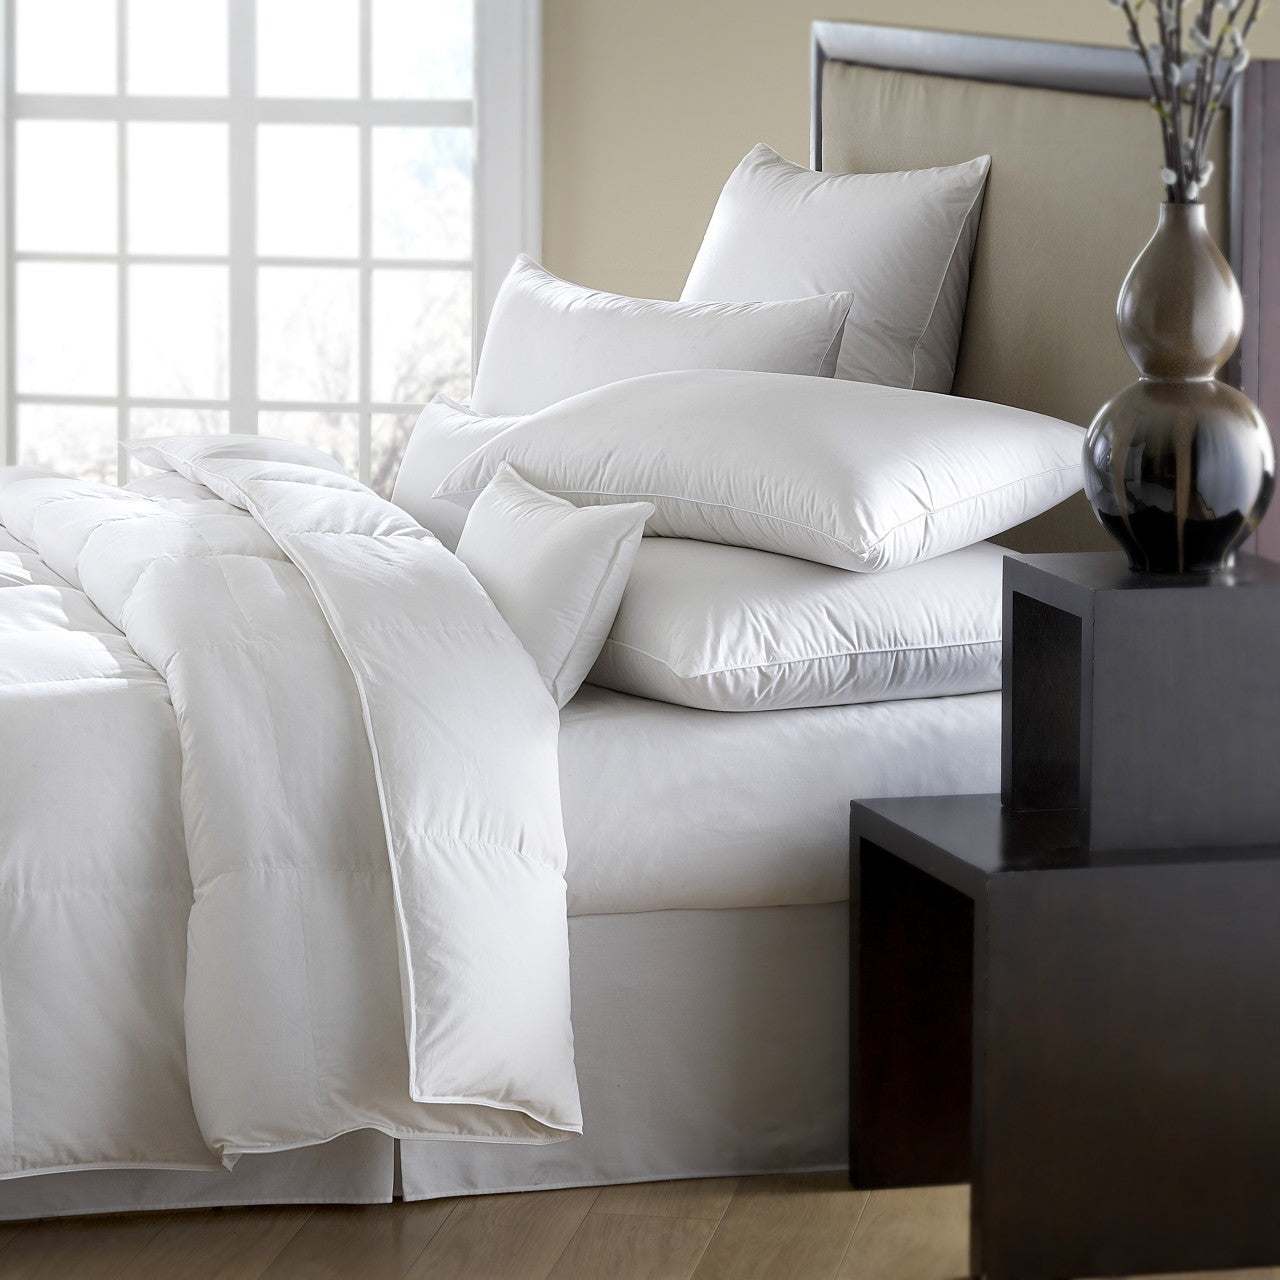 mackenza 560 fill power white down pillow, downright, insert, - adorn.house